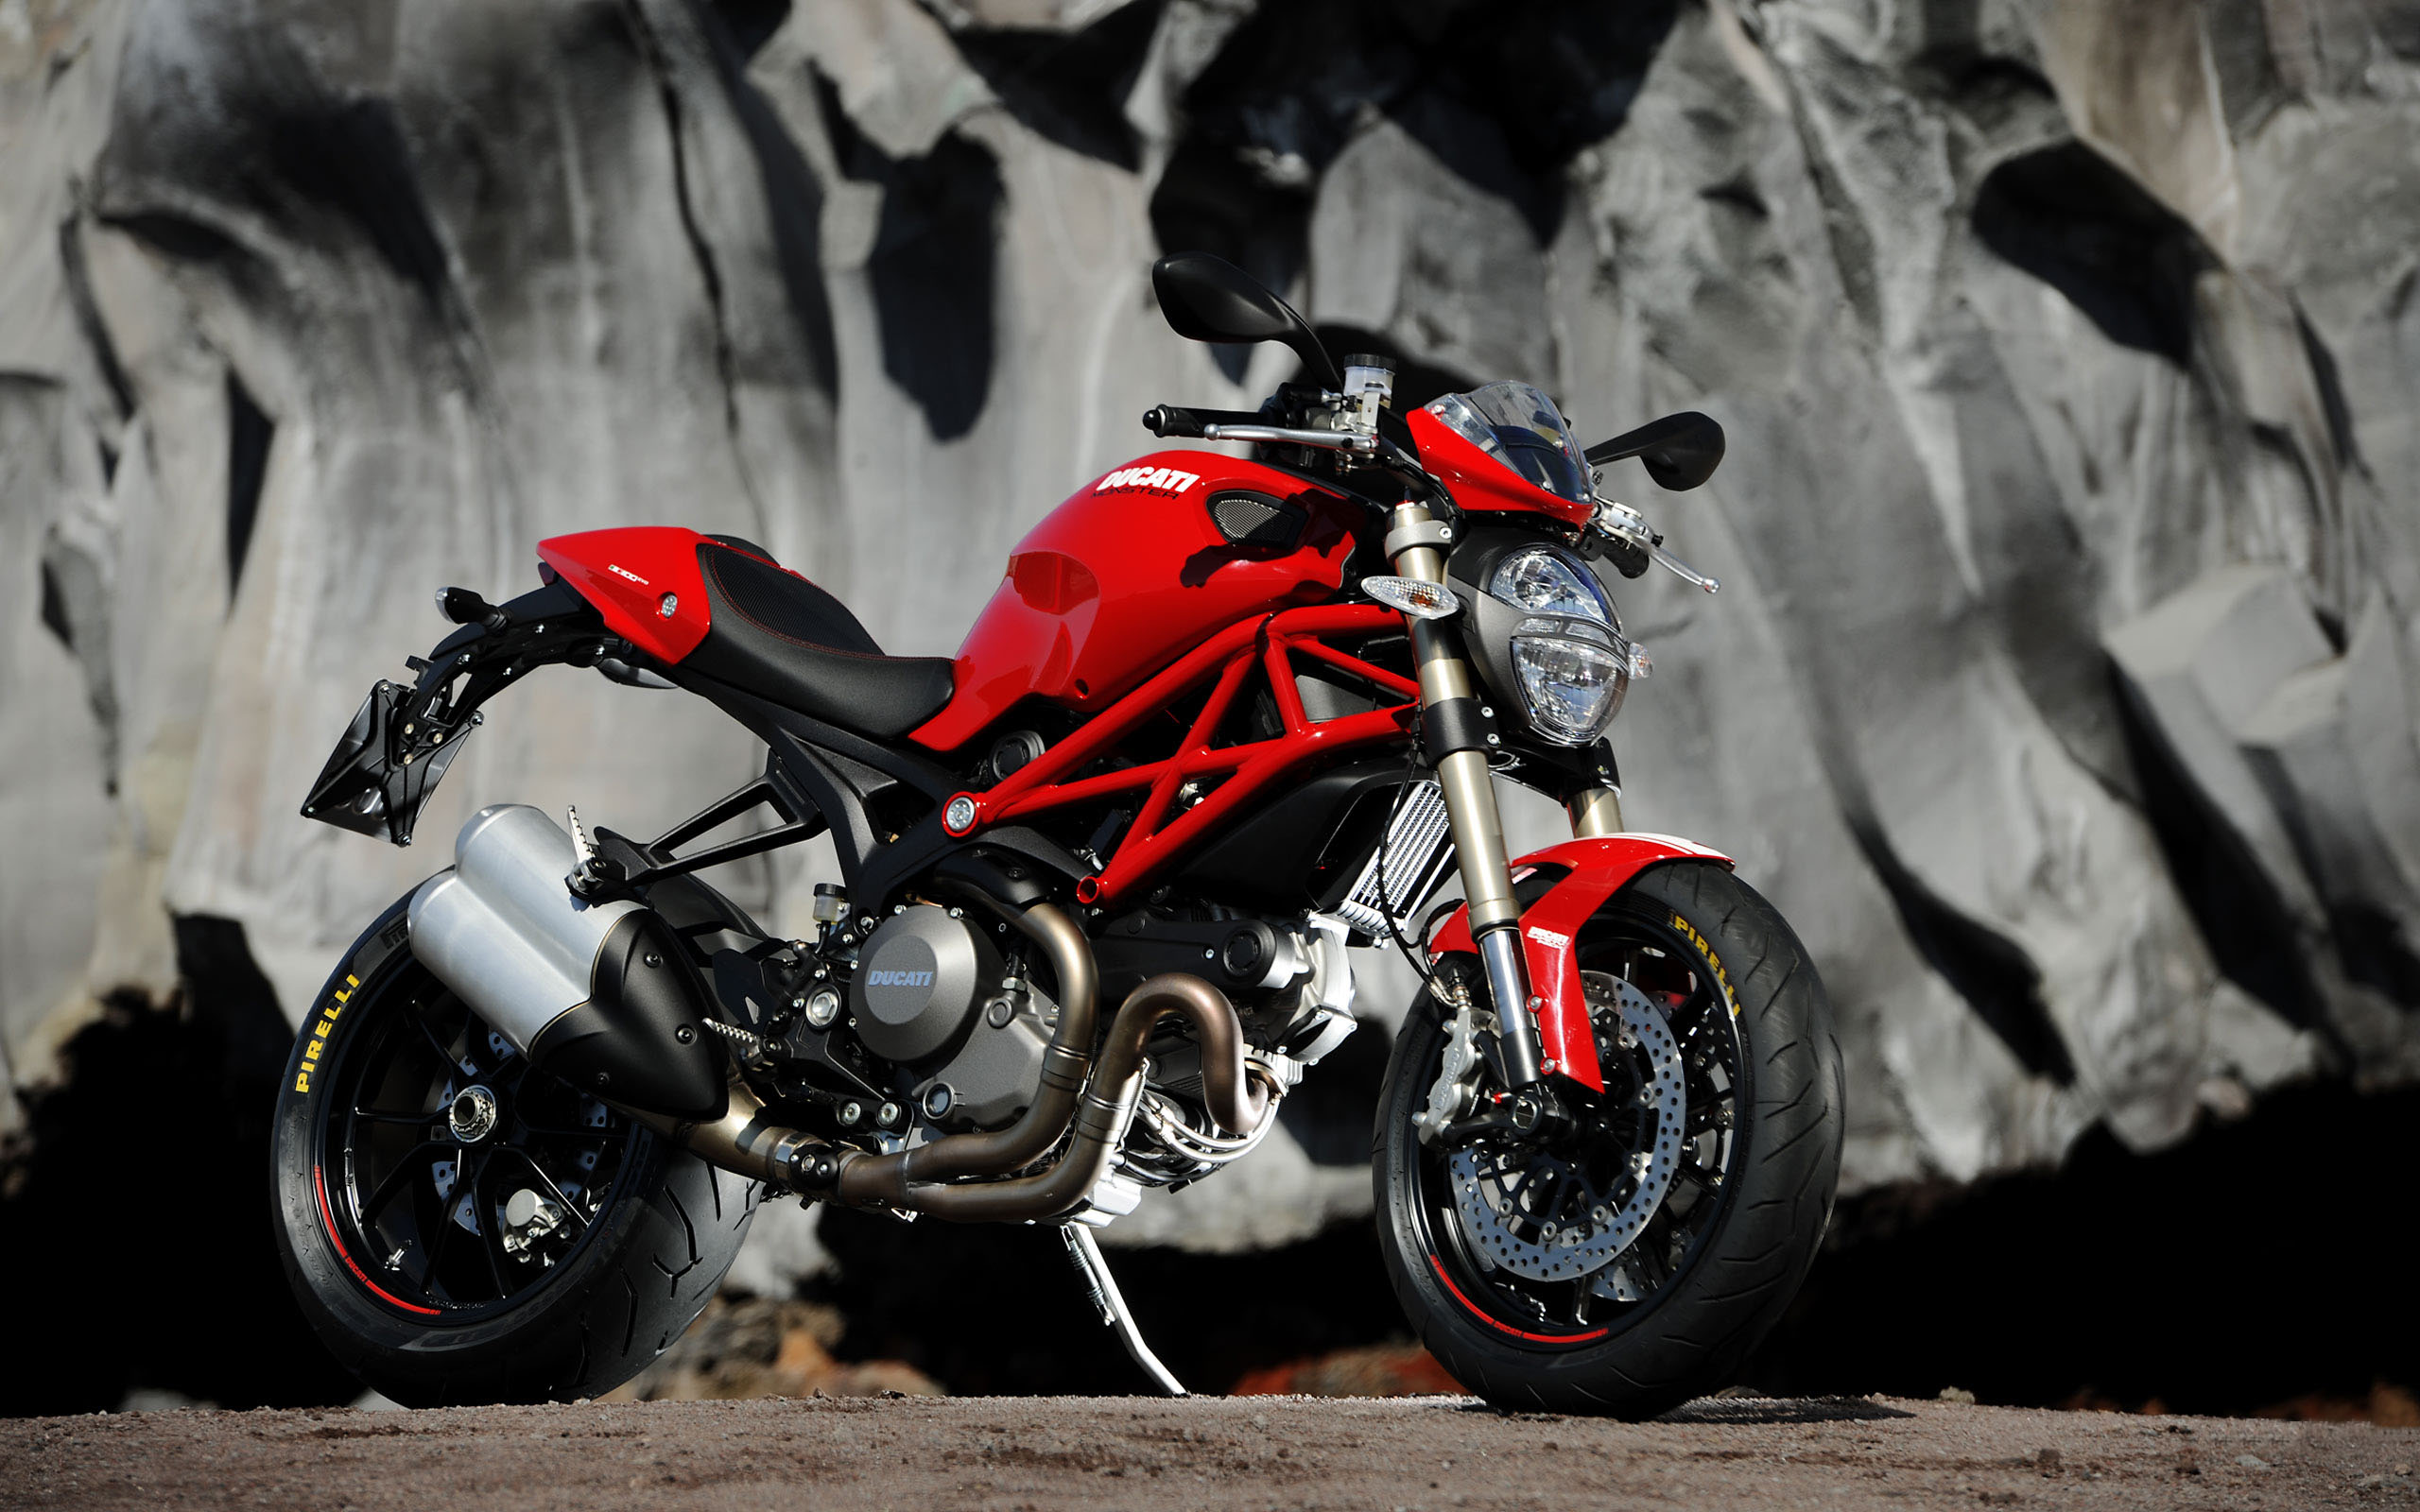 pc wallpaper Ducati Monster 1100 EVO 2560x1600